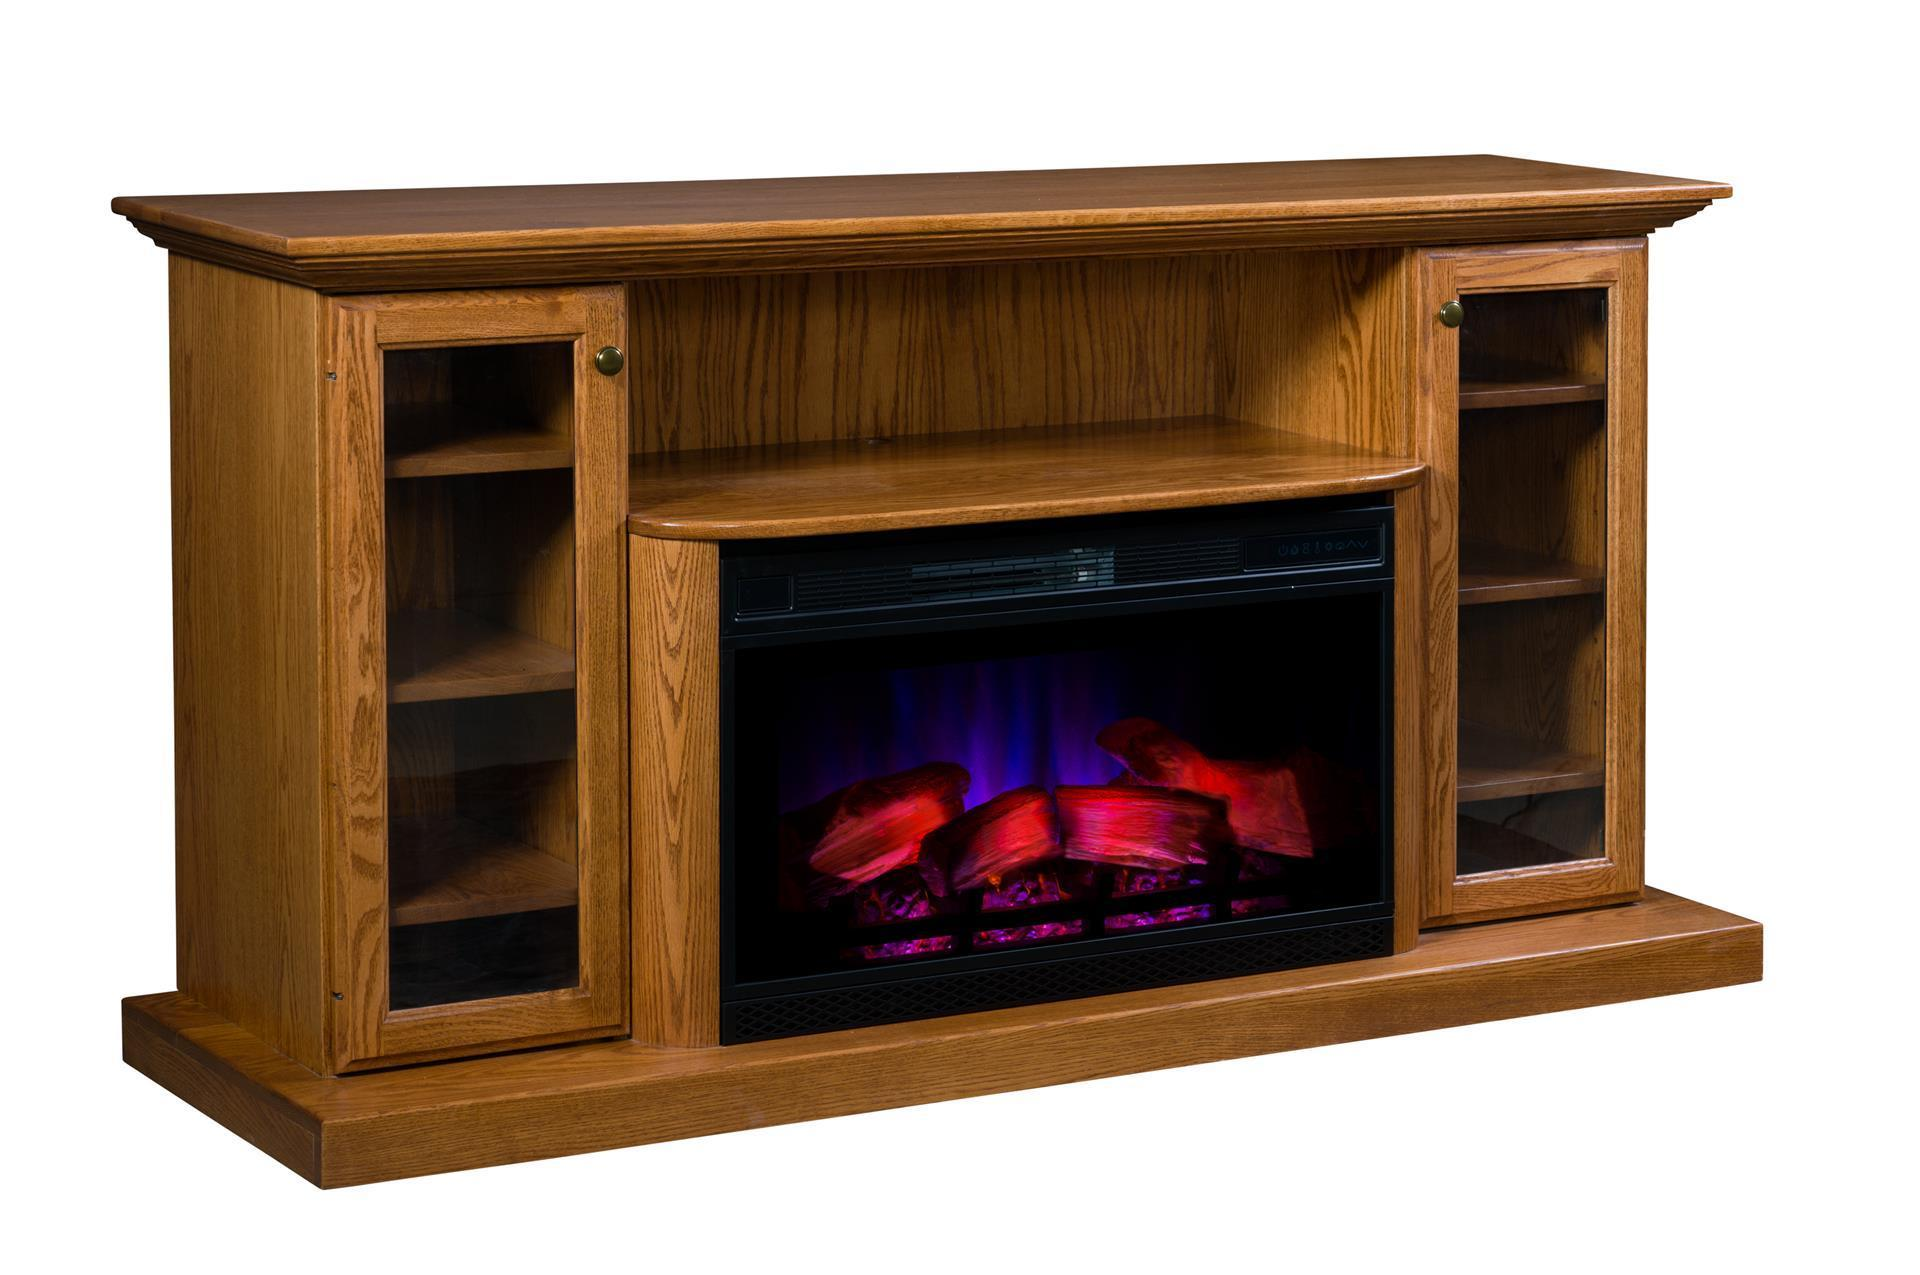 Swell Amish 70 Electric Fireplace Entertainment Center Interior Design Ideas Apansoteloinfo